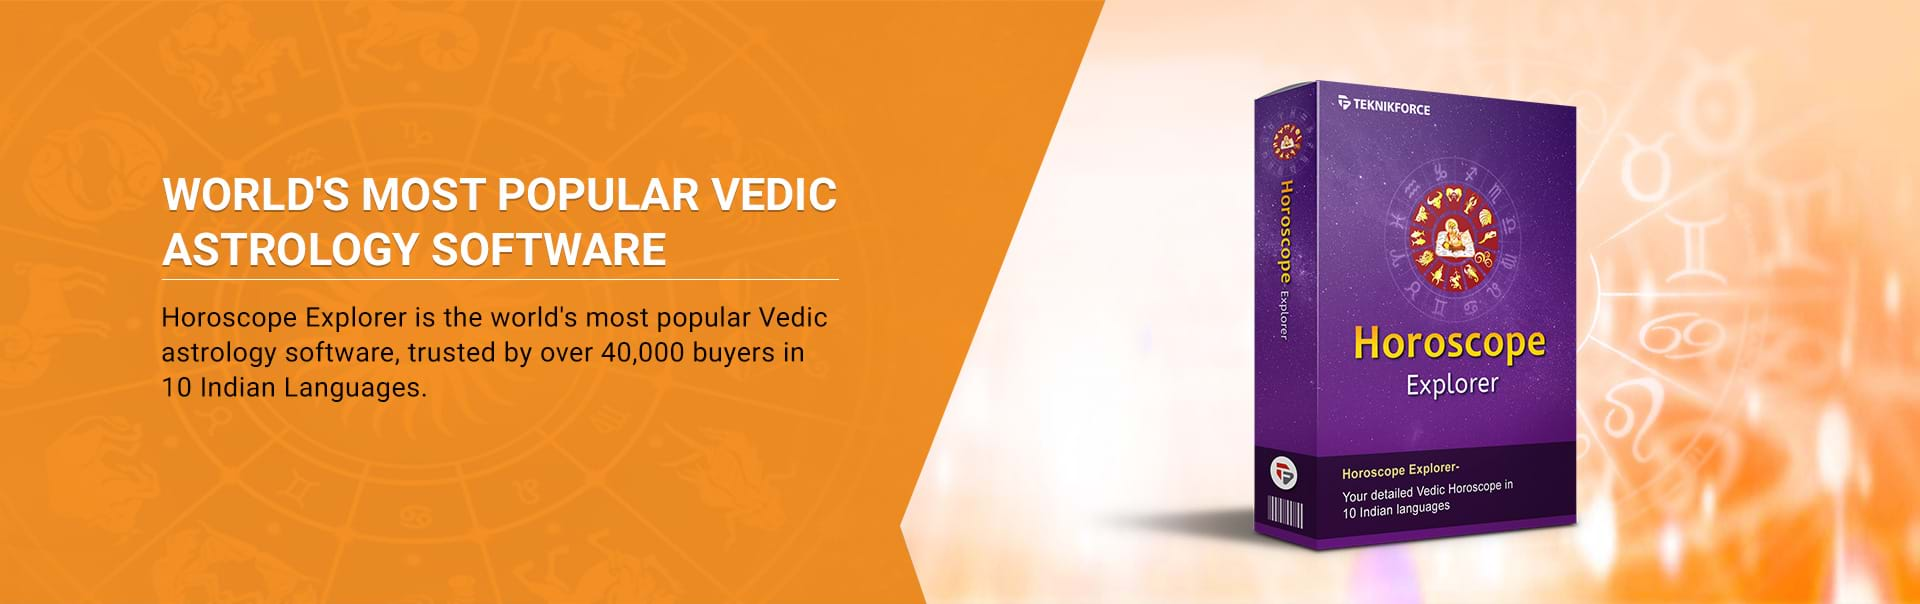 Vedic astrology software products - Horoscope Explorer